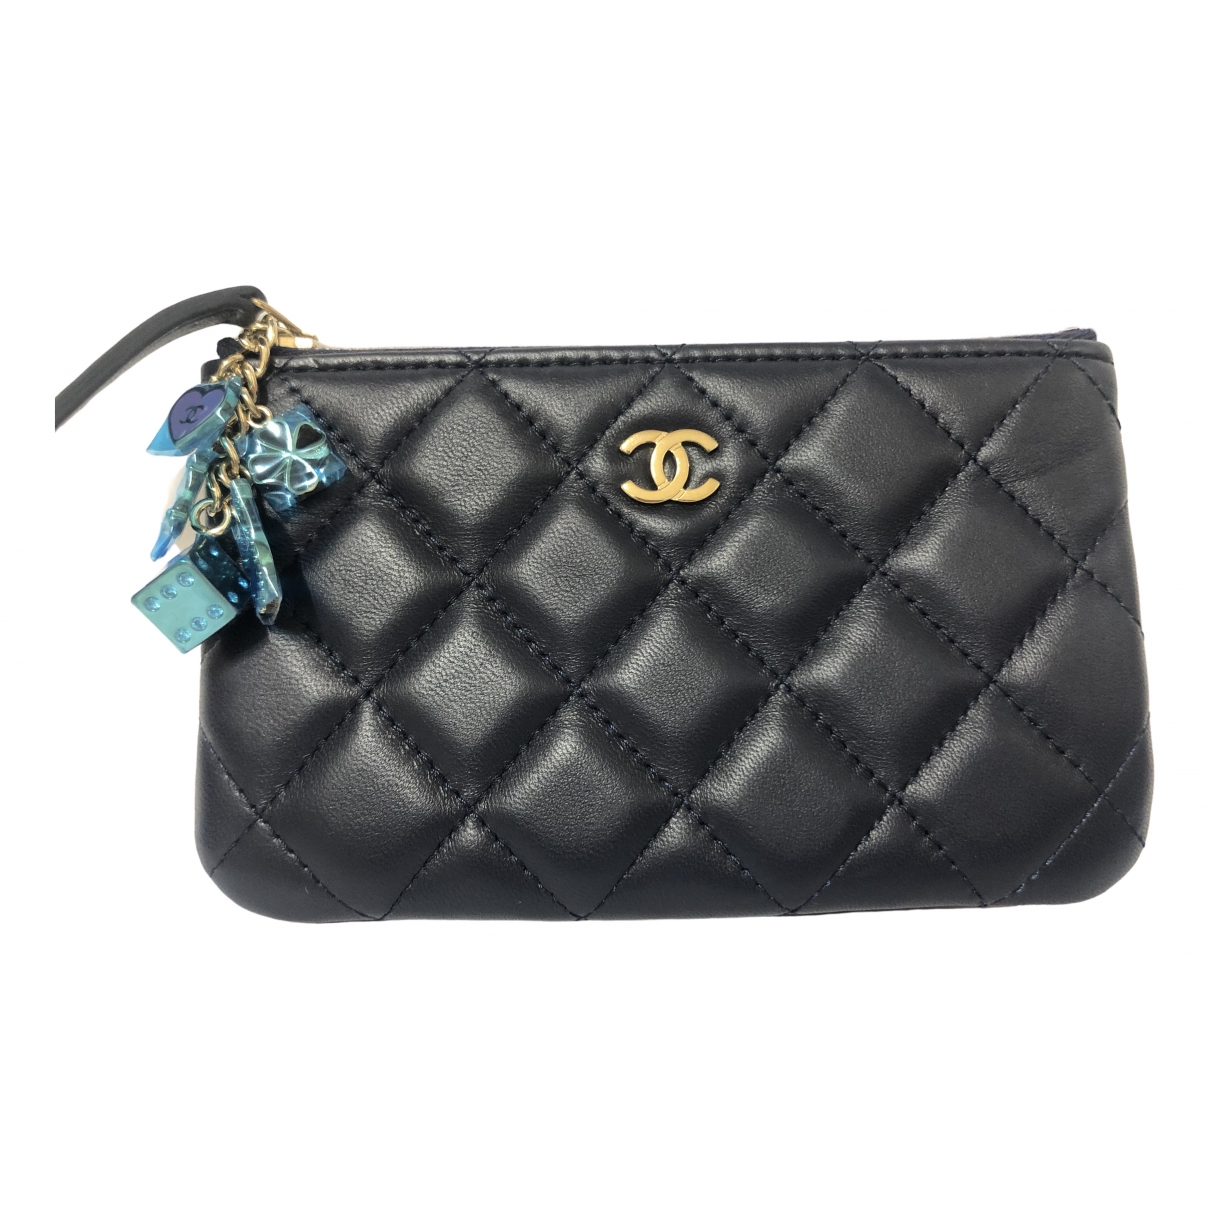 Chanel Timeless/Classique Blue Leather Purses, wallet & cases for Women \N